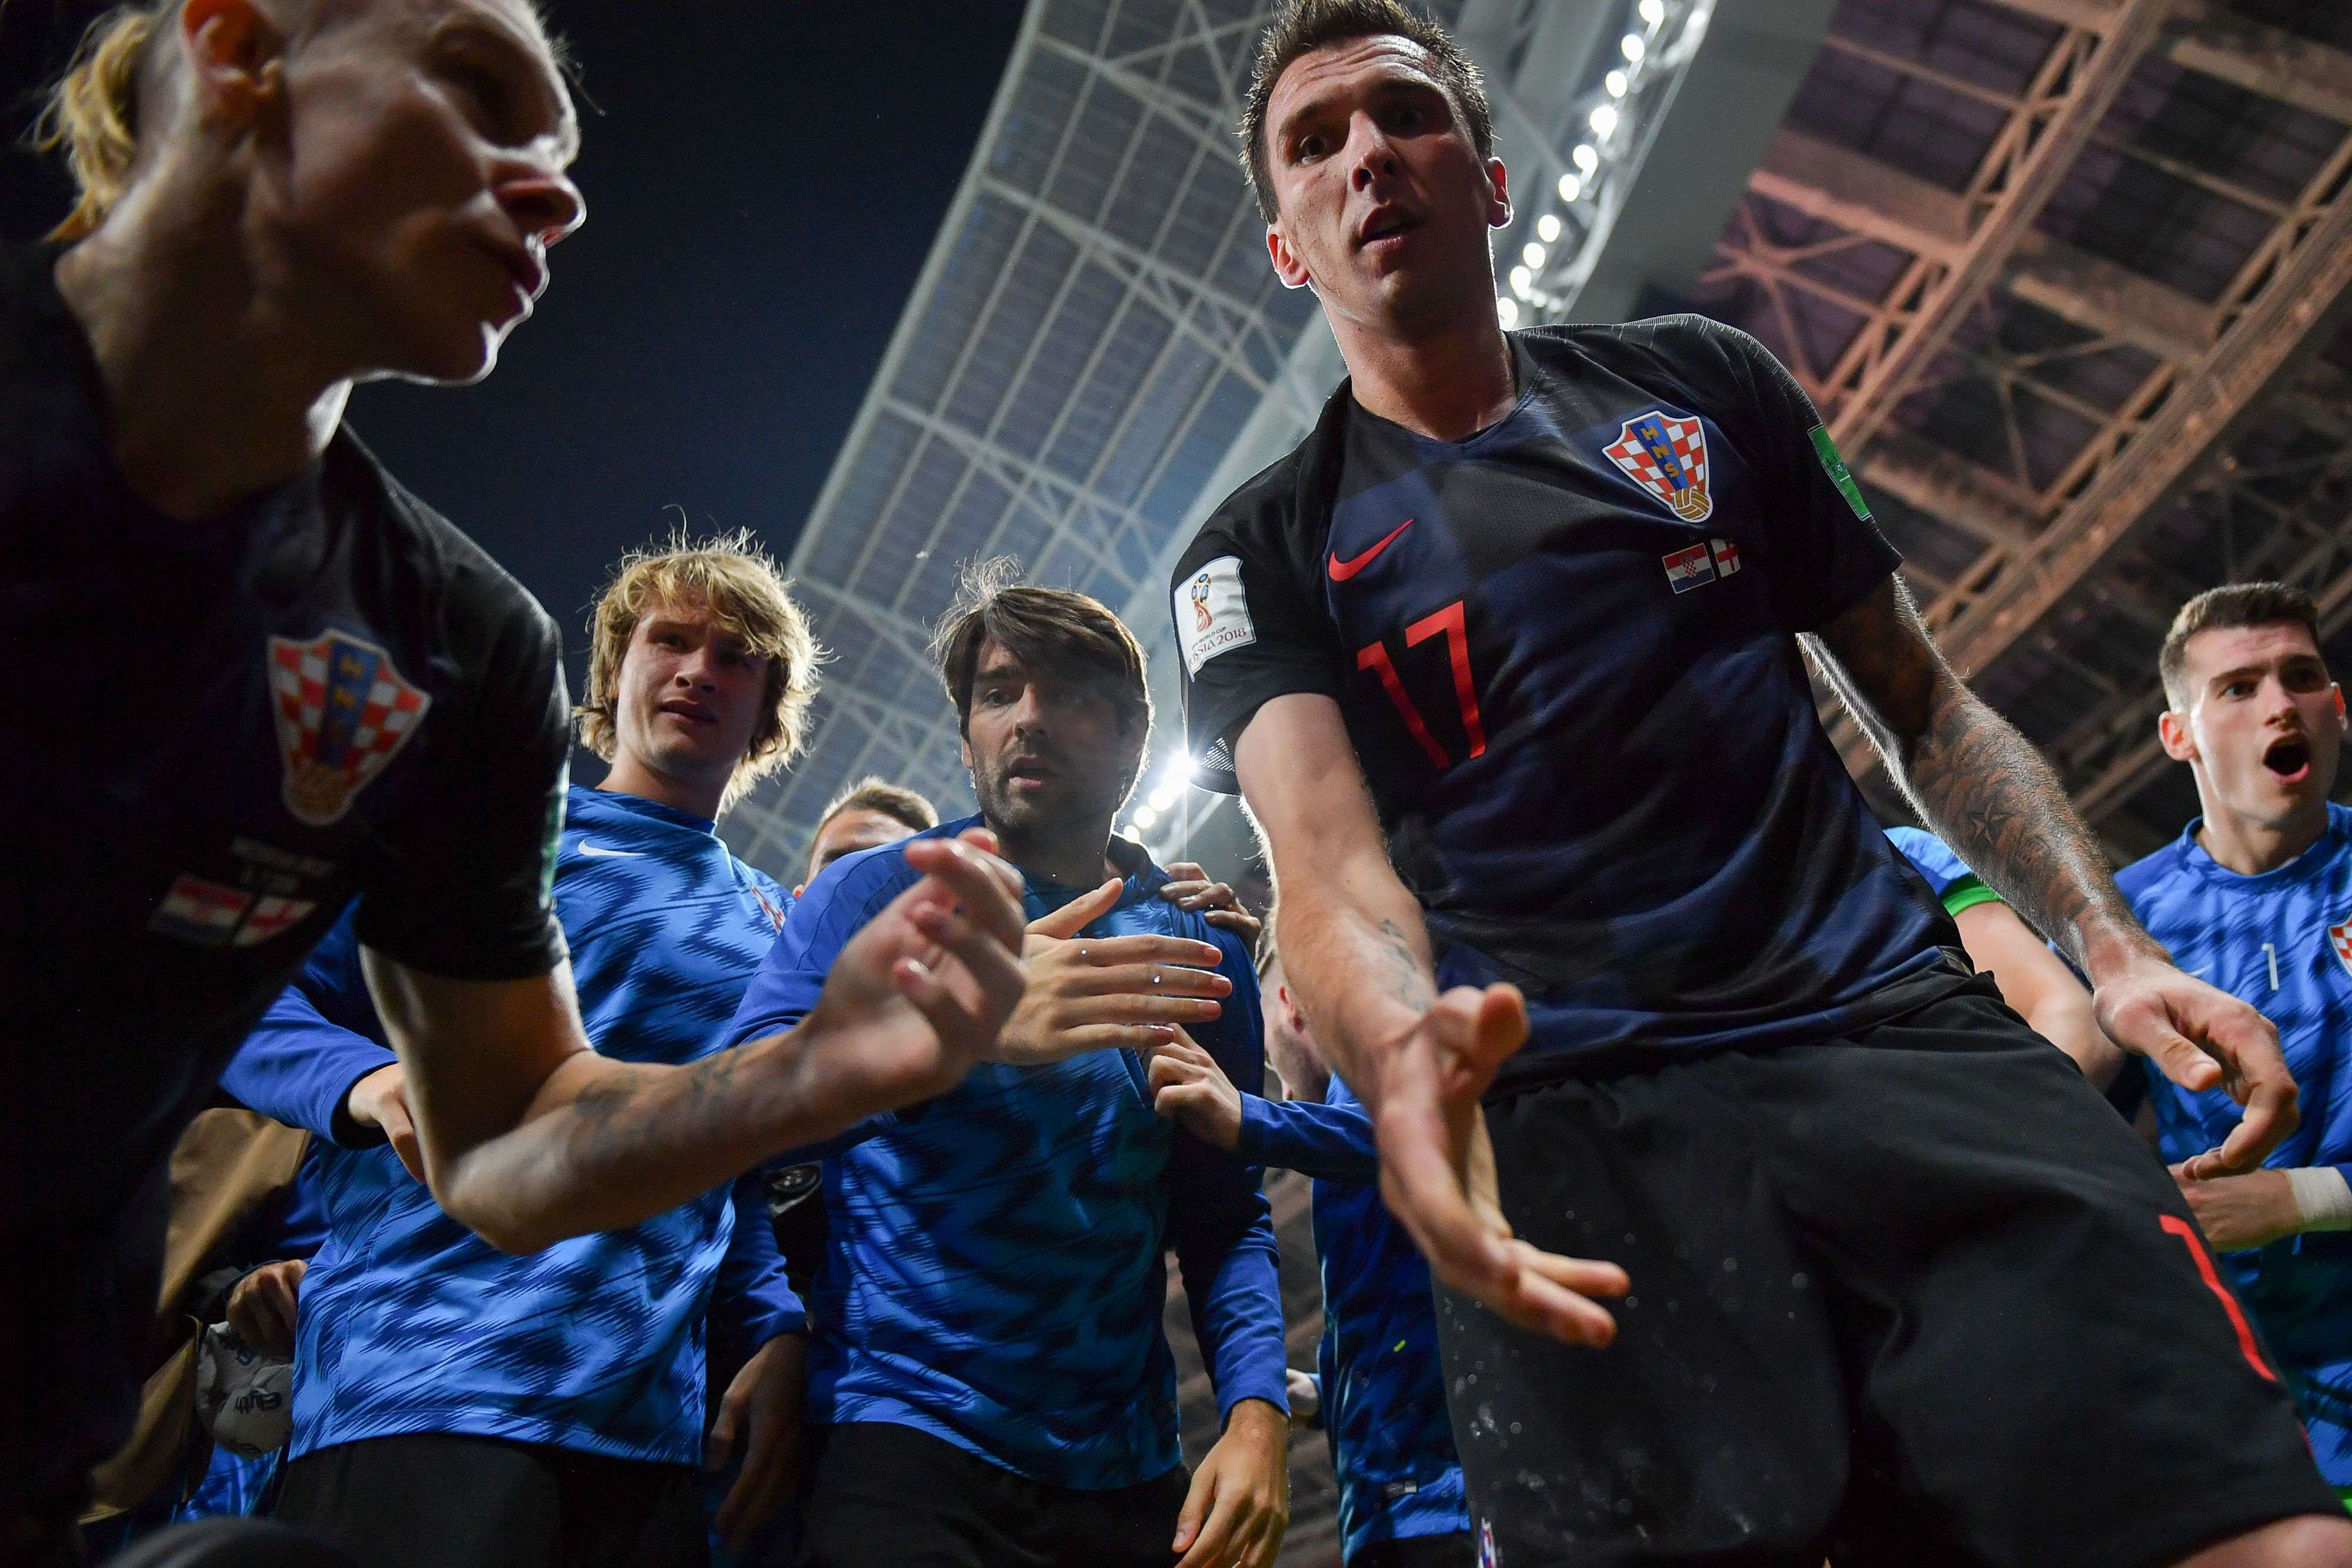 TOPSHOT - Croatia's forward Mario Mandzukic (C) offers to help AFP photographer Yuri Cortez after he fell on him with teammates while celebrating their second goal during the Russia 2018 World Cup semi-final football match between Croatia and England at the Luzhniki Stadium in Moscow on July 11, 2018. RESTRICTED TO EDITORIAL USE - NO MOBILE PUSH ALERTS/DOWNLOADS / AFP / Yuri CORTEZ / RESTRICTED TO EDITORIAL USE - NO MOBILE PUSH ALERTS/DOWNLOADS